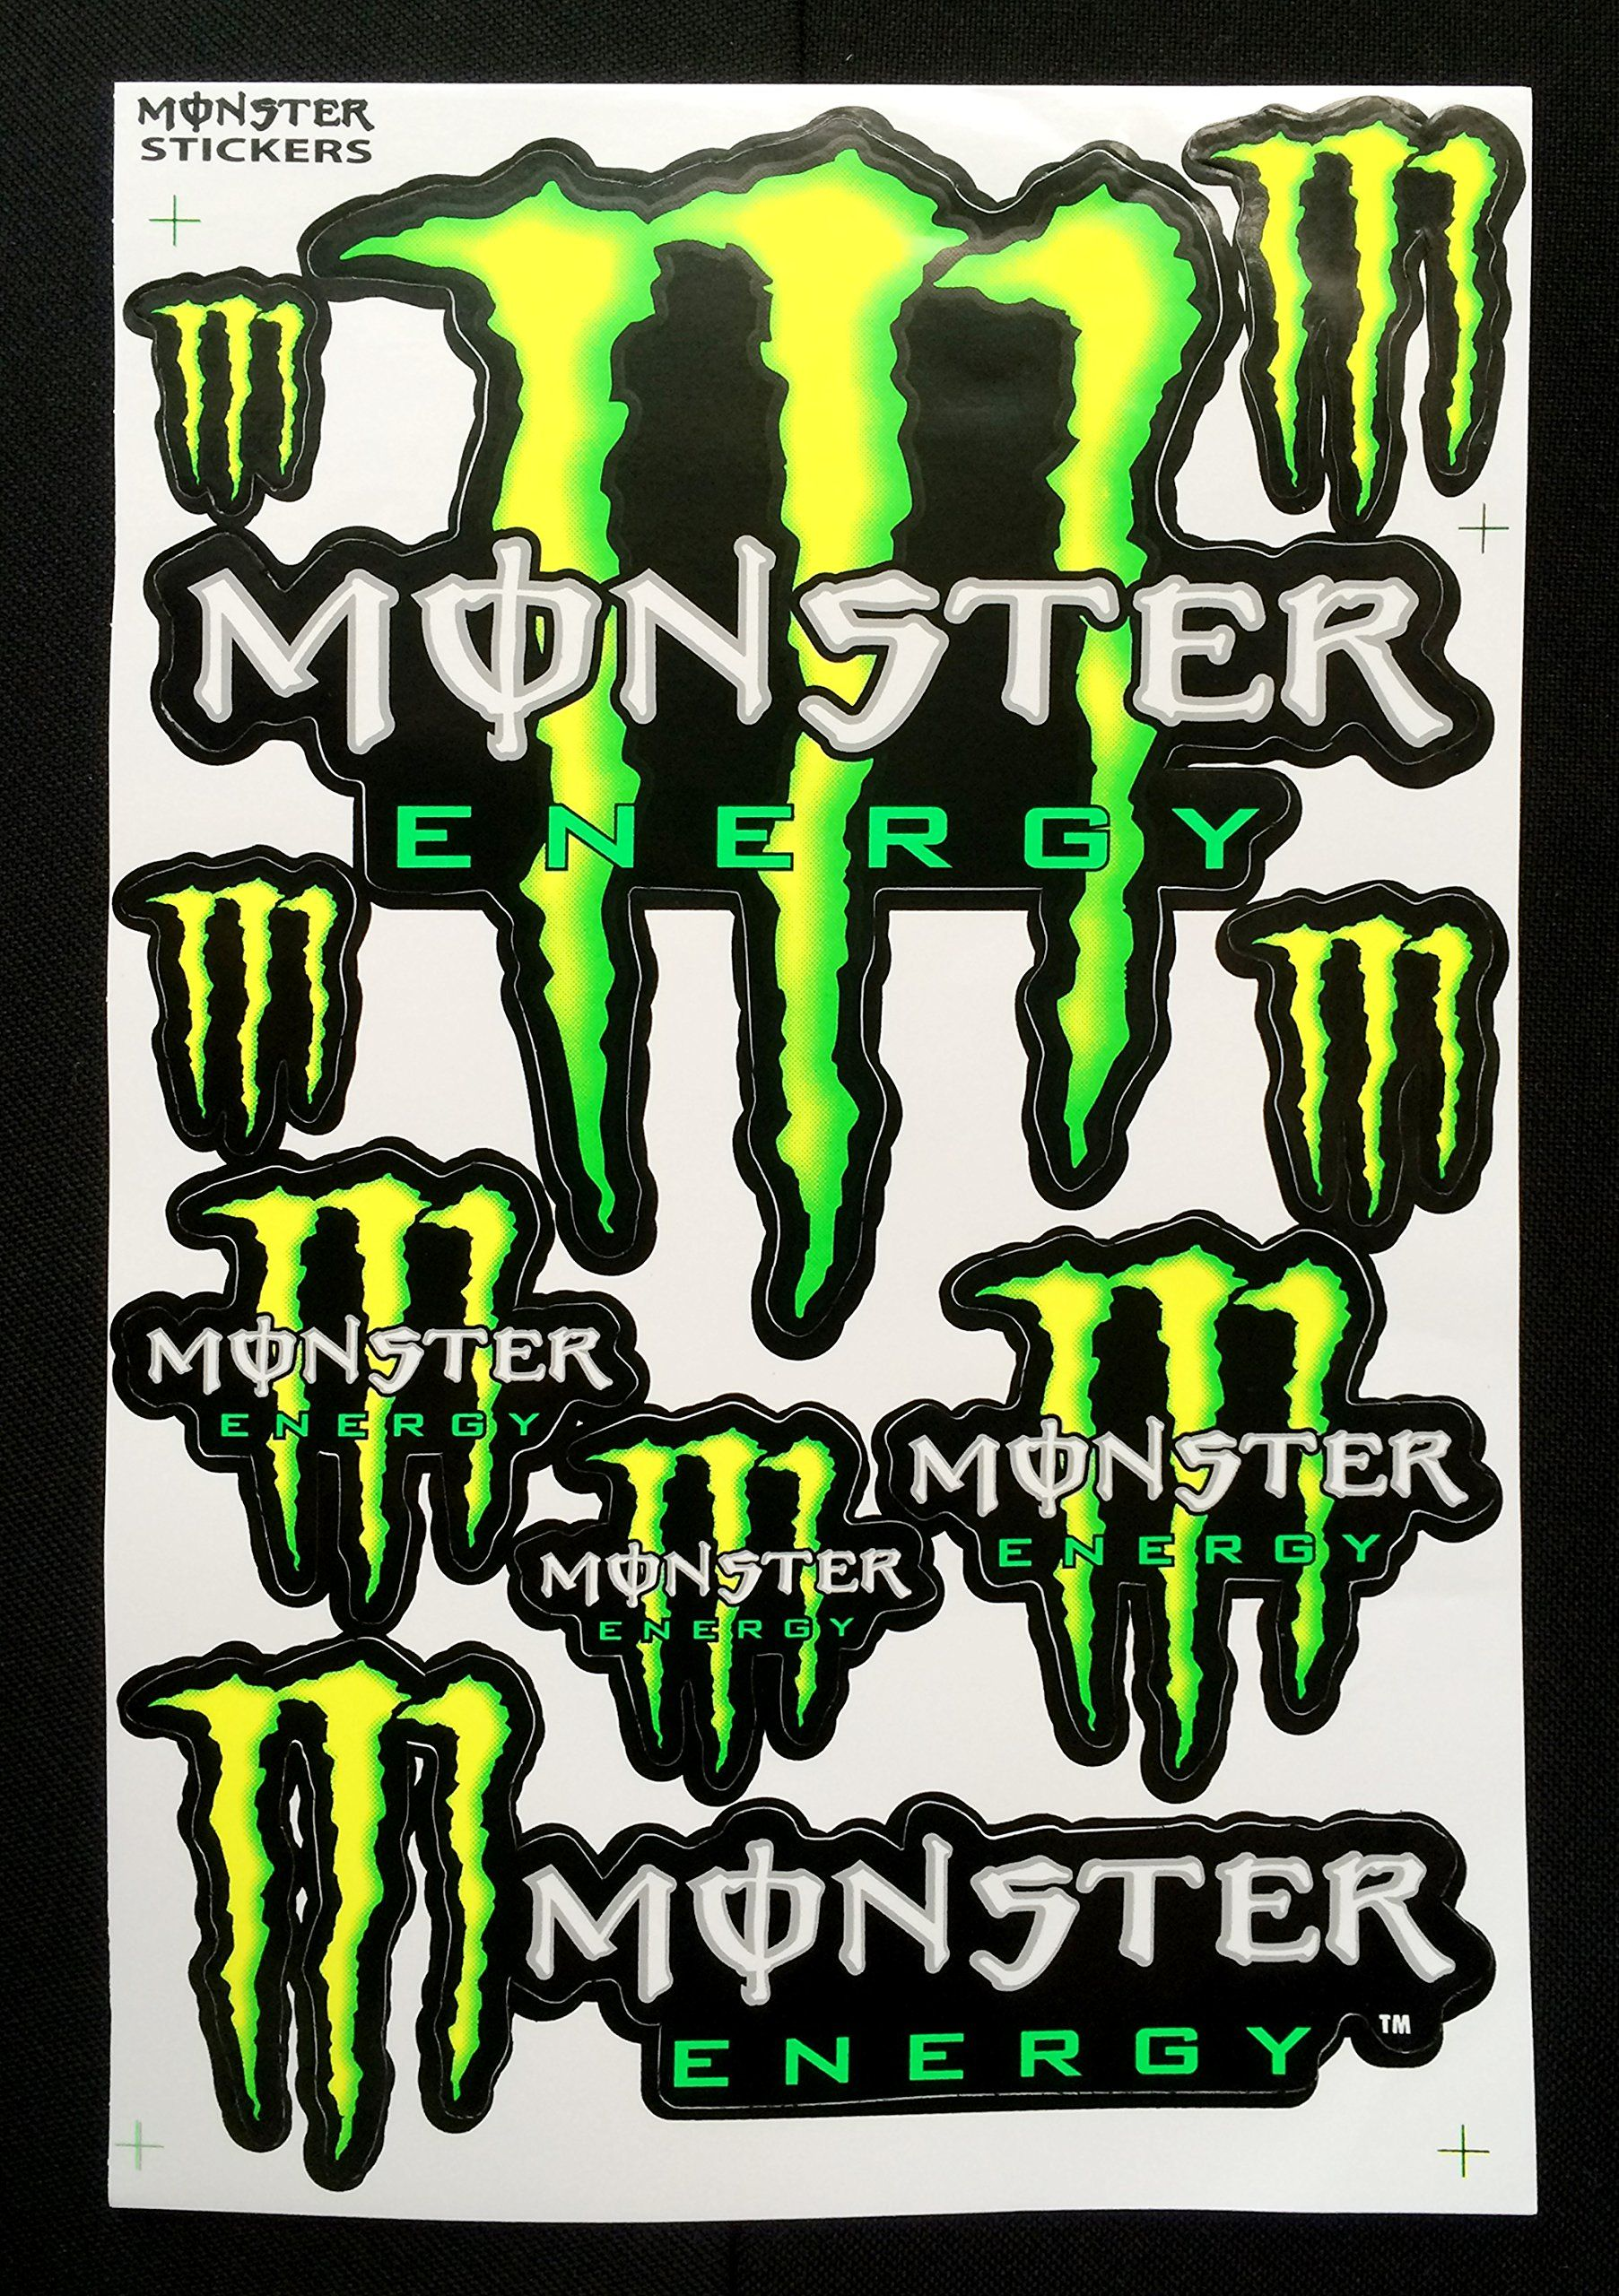 4 monster energy drink stickers sheet for helmet bike dirt bike atv skateboard motorcross car decal automotive exterior accessories decals bumper stickers